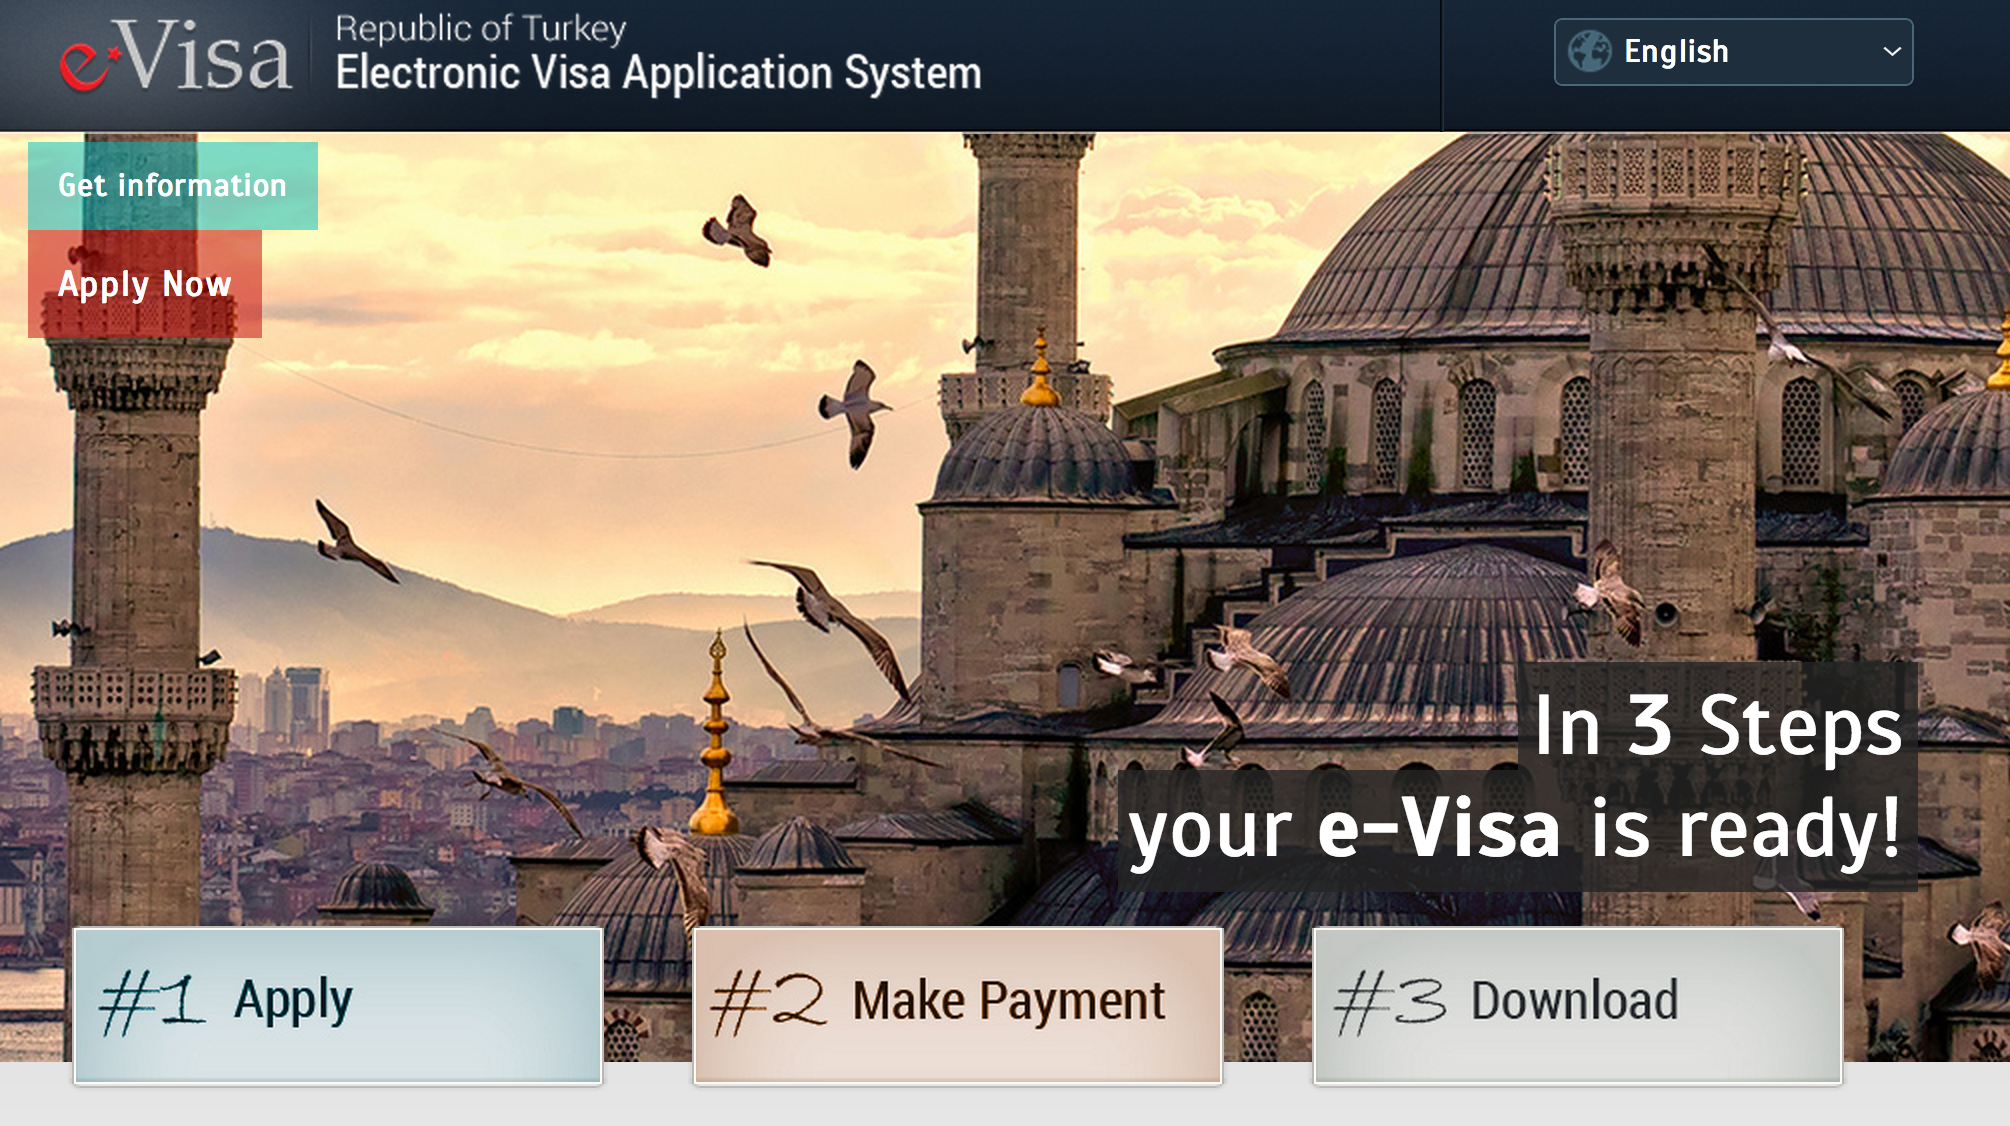 e-Visa for Turkey